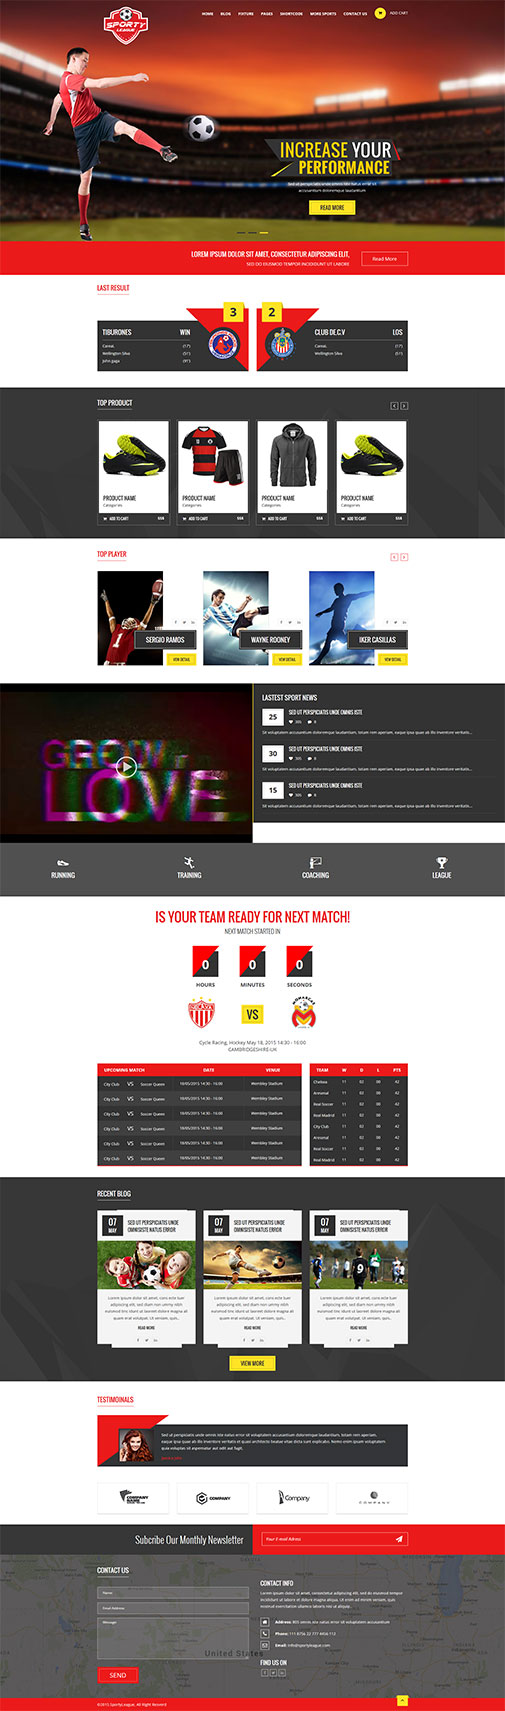 free sports magazine HTML5 and CSS3 responsive template